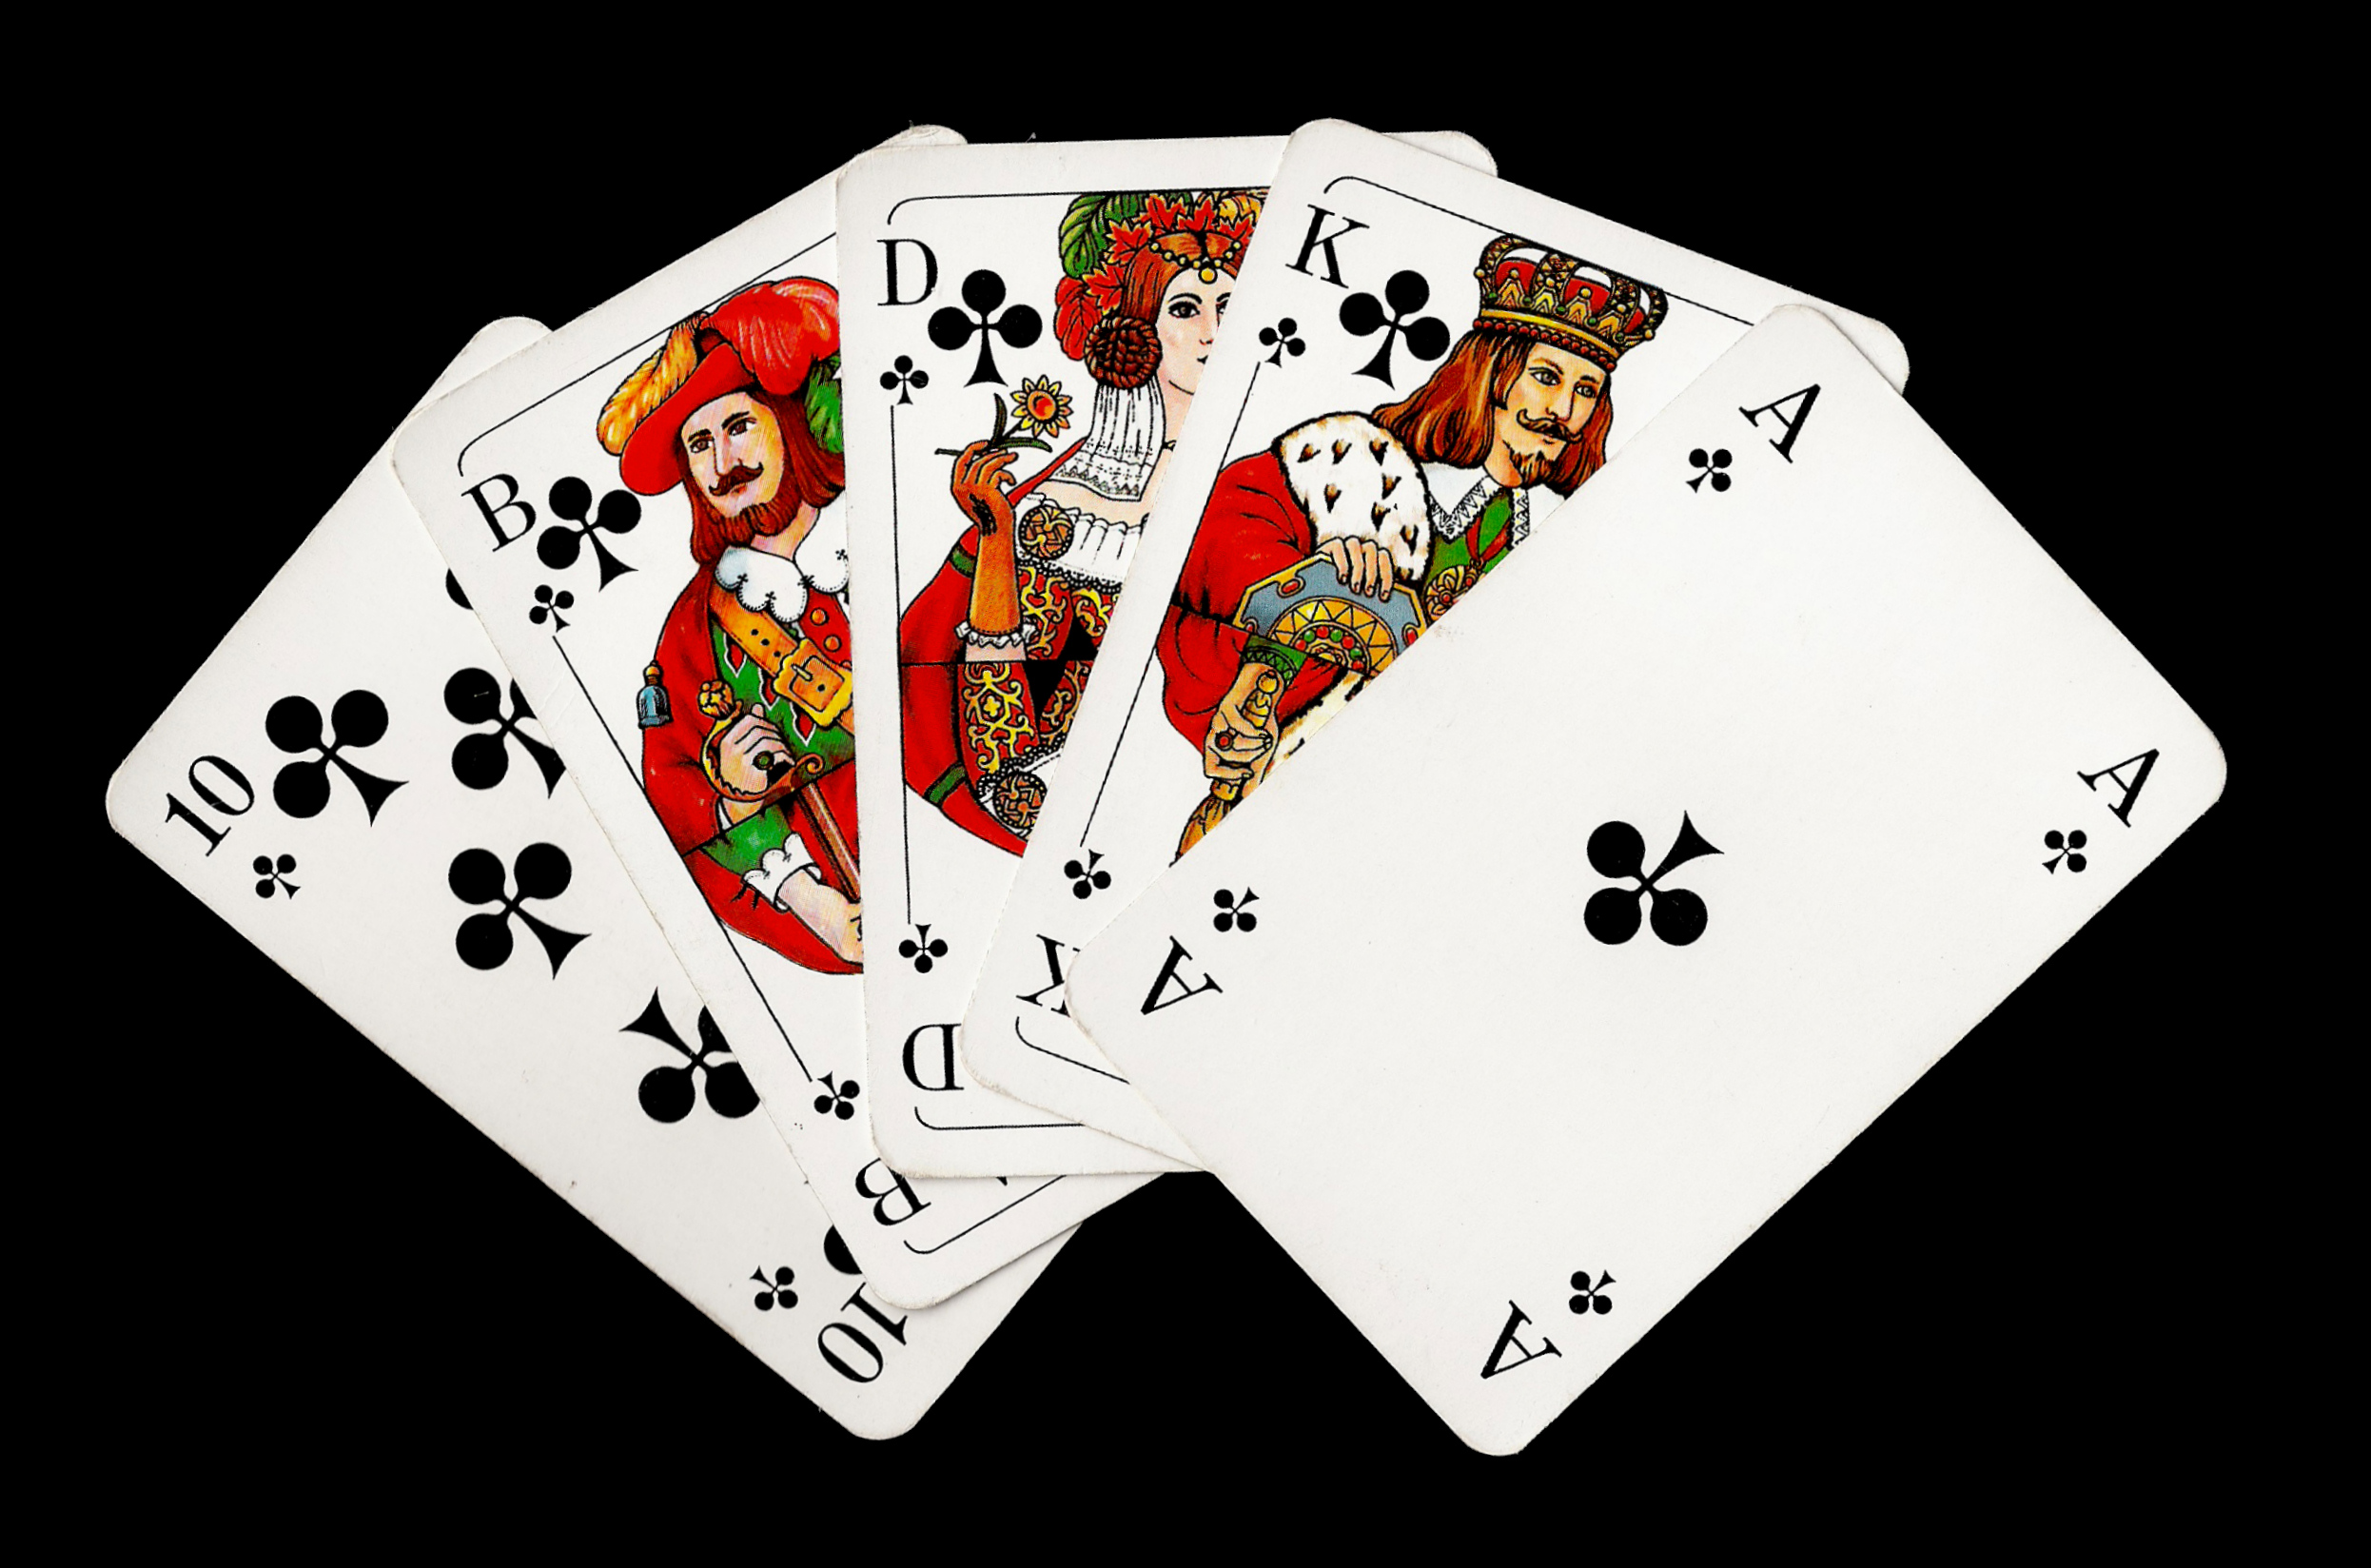 royal flush meaning and definition